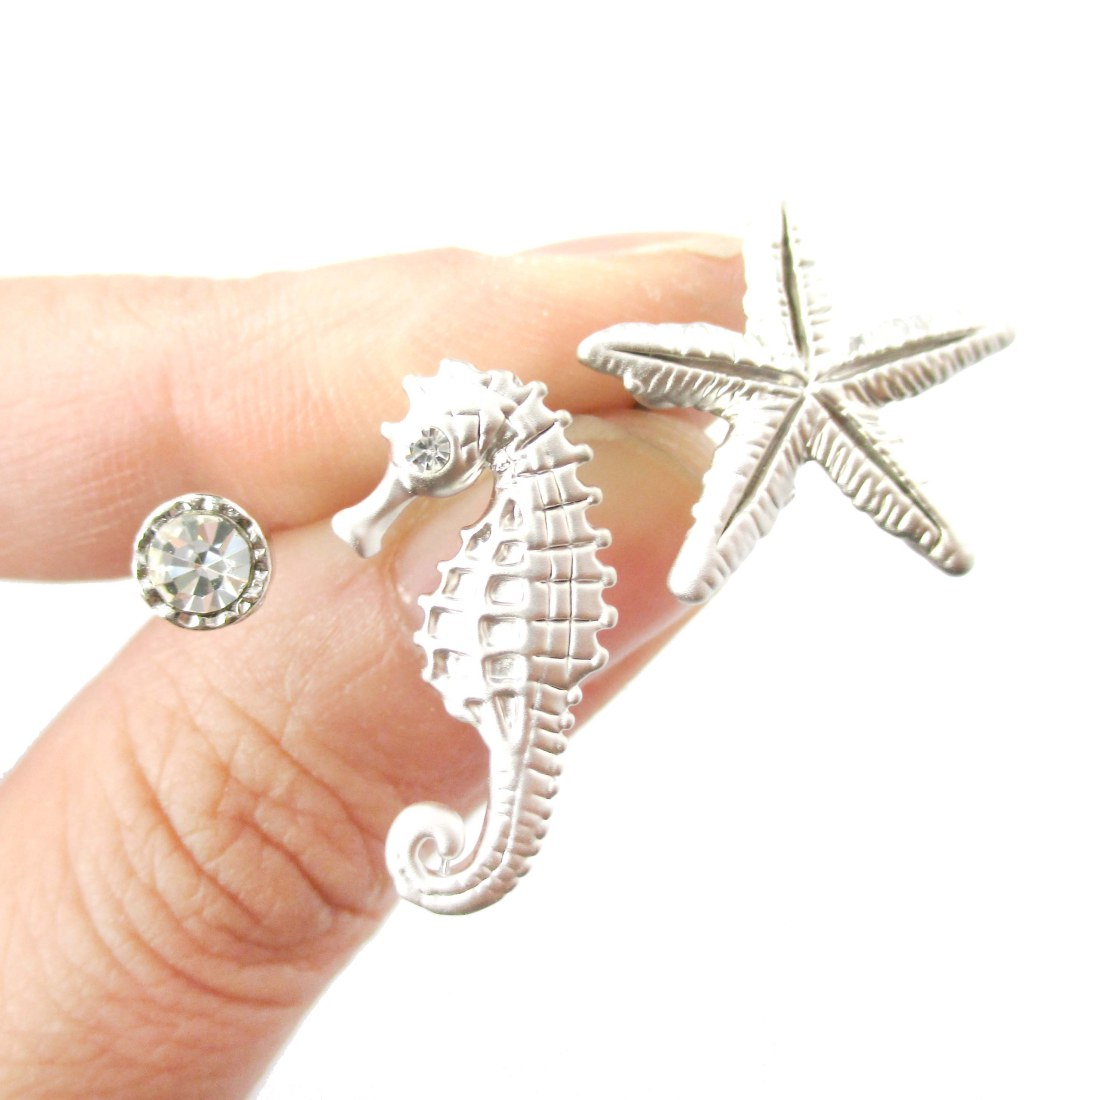 Pretty Seahorse And Starfish Shaped Allergy Free Silver Stud Earrings Sold By Dotoly Animal Jewelry On Storenvy